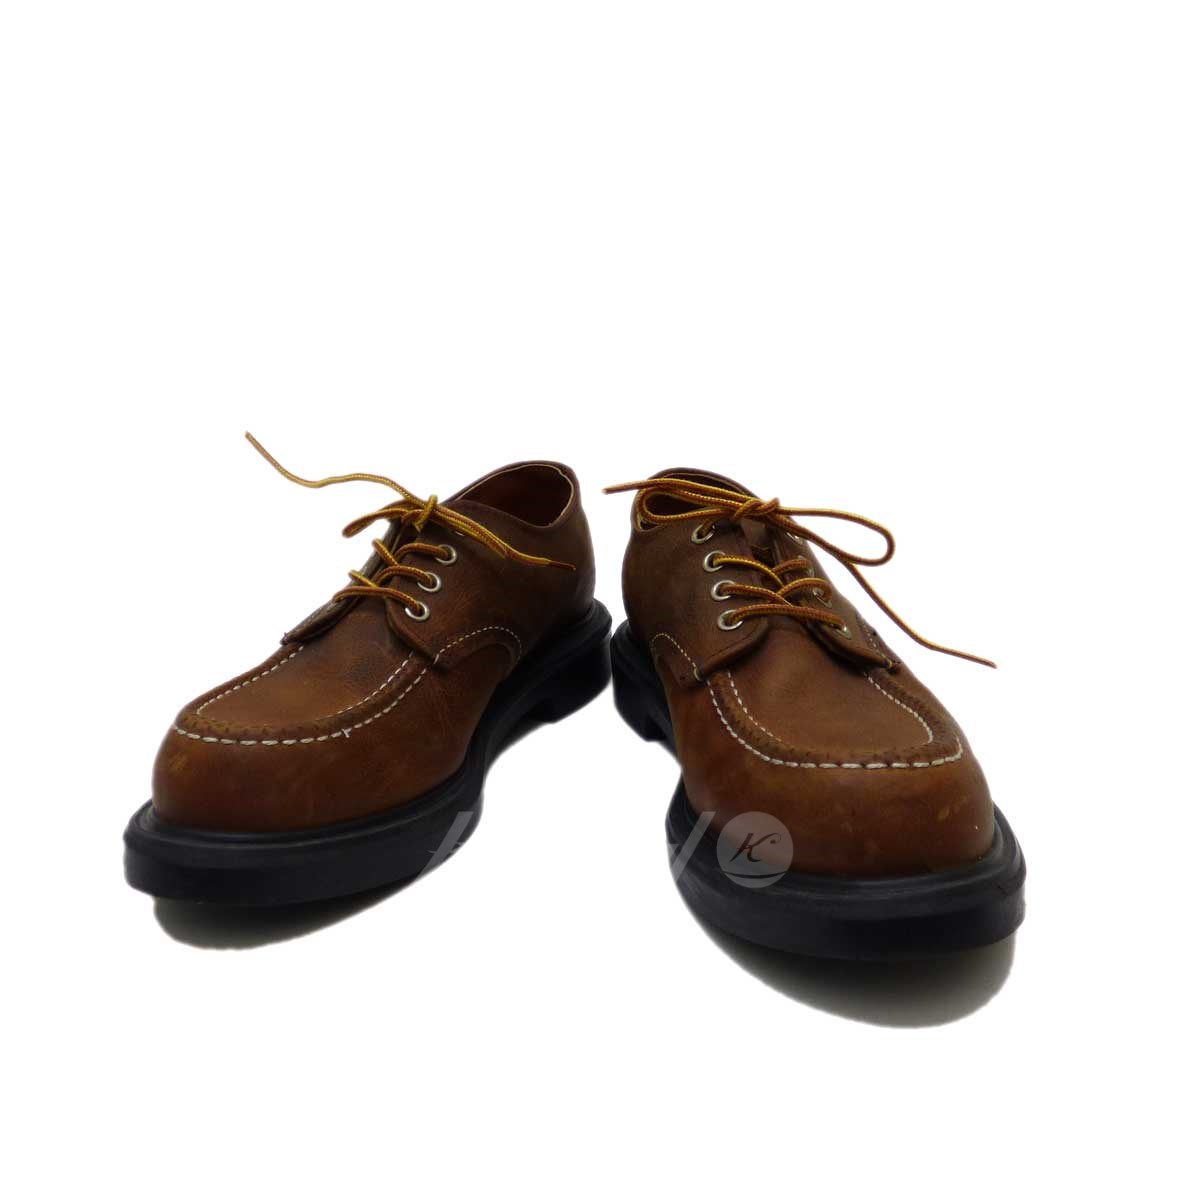 【中古】RED WING SUPERSOLE OXFORD 8021 【送料無料】 【014313】 【KIND1327】